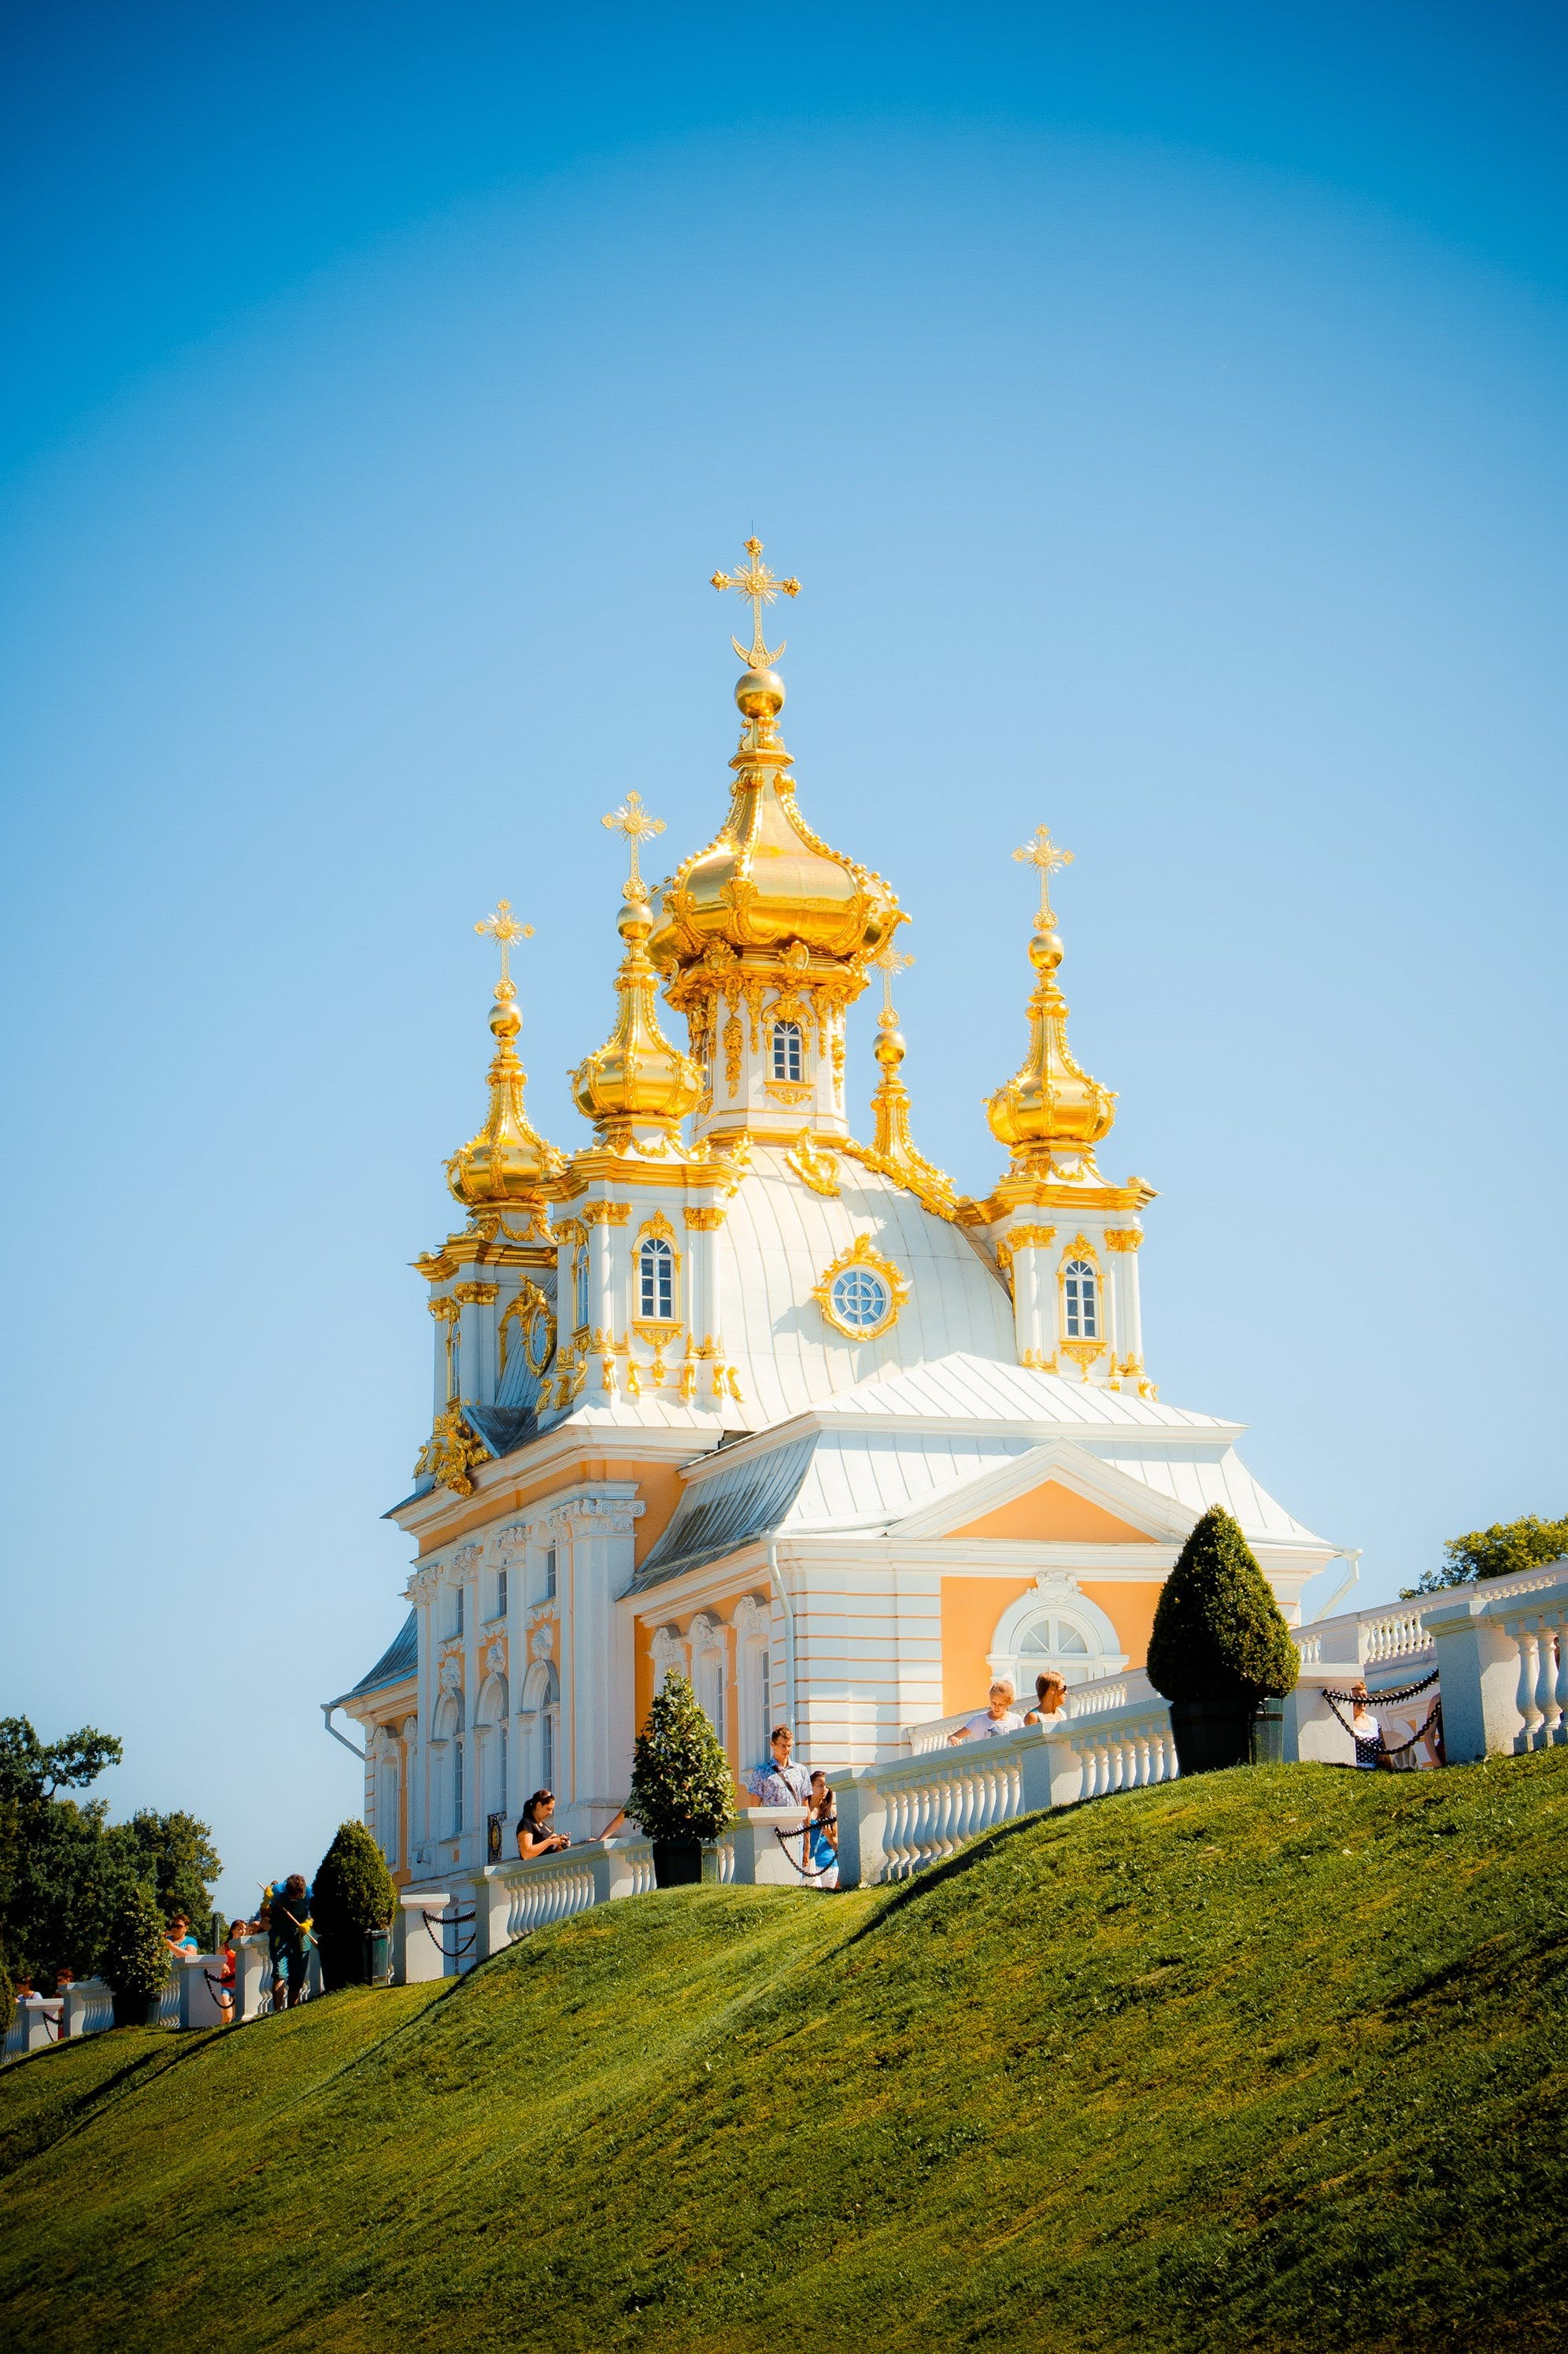 White and Gold Church